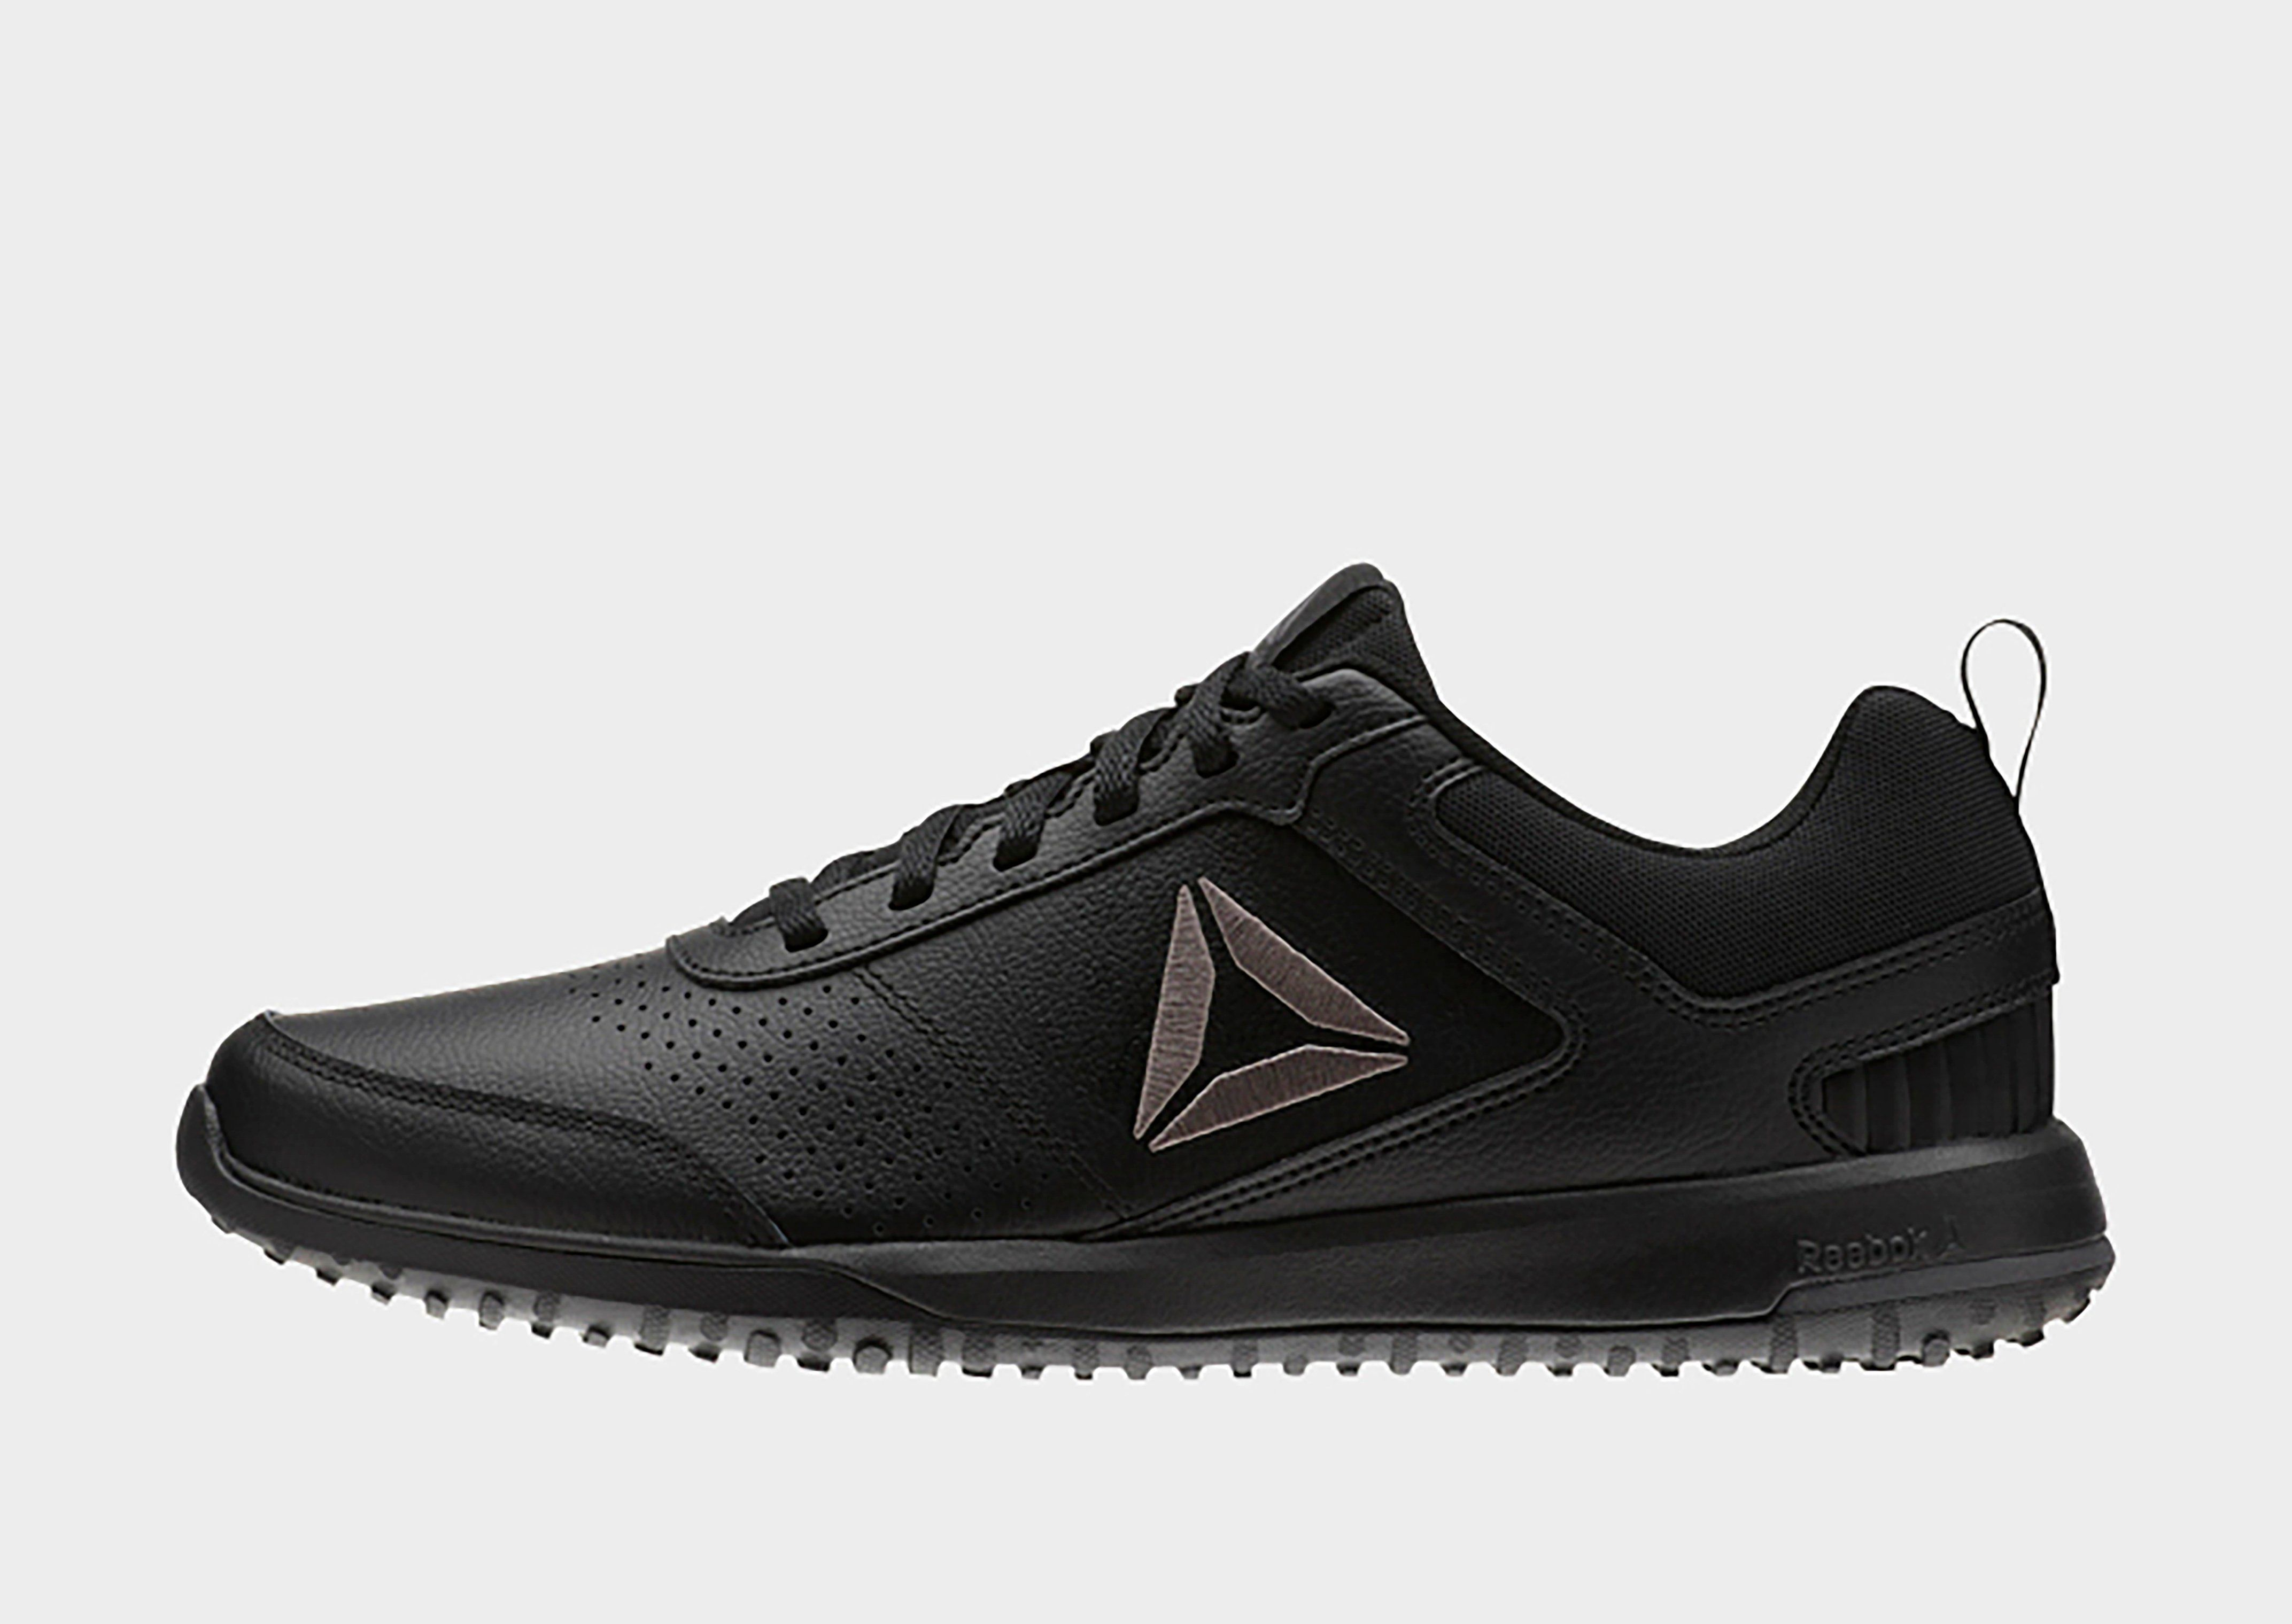 80d7a826767efa REEBOK CXT - Synthetic Leather Pack